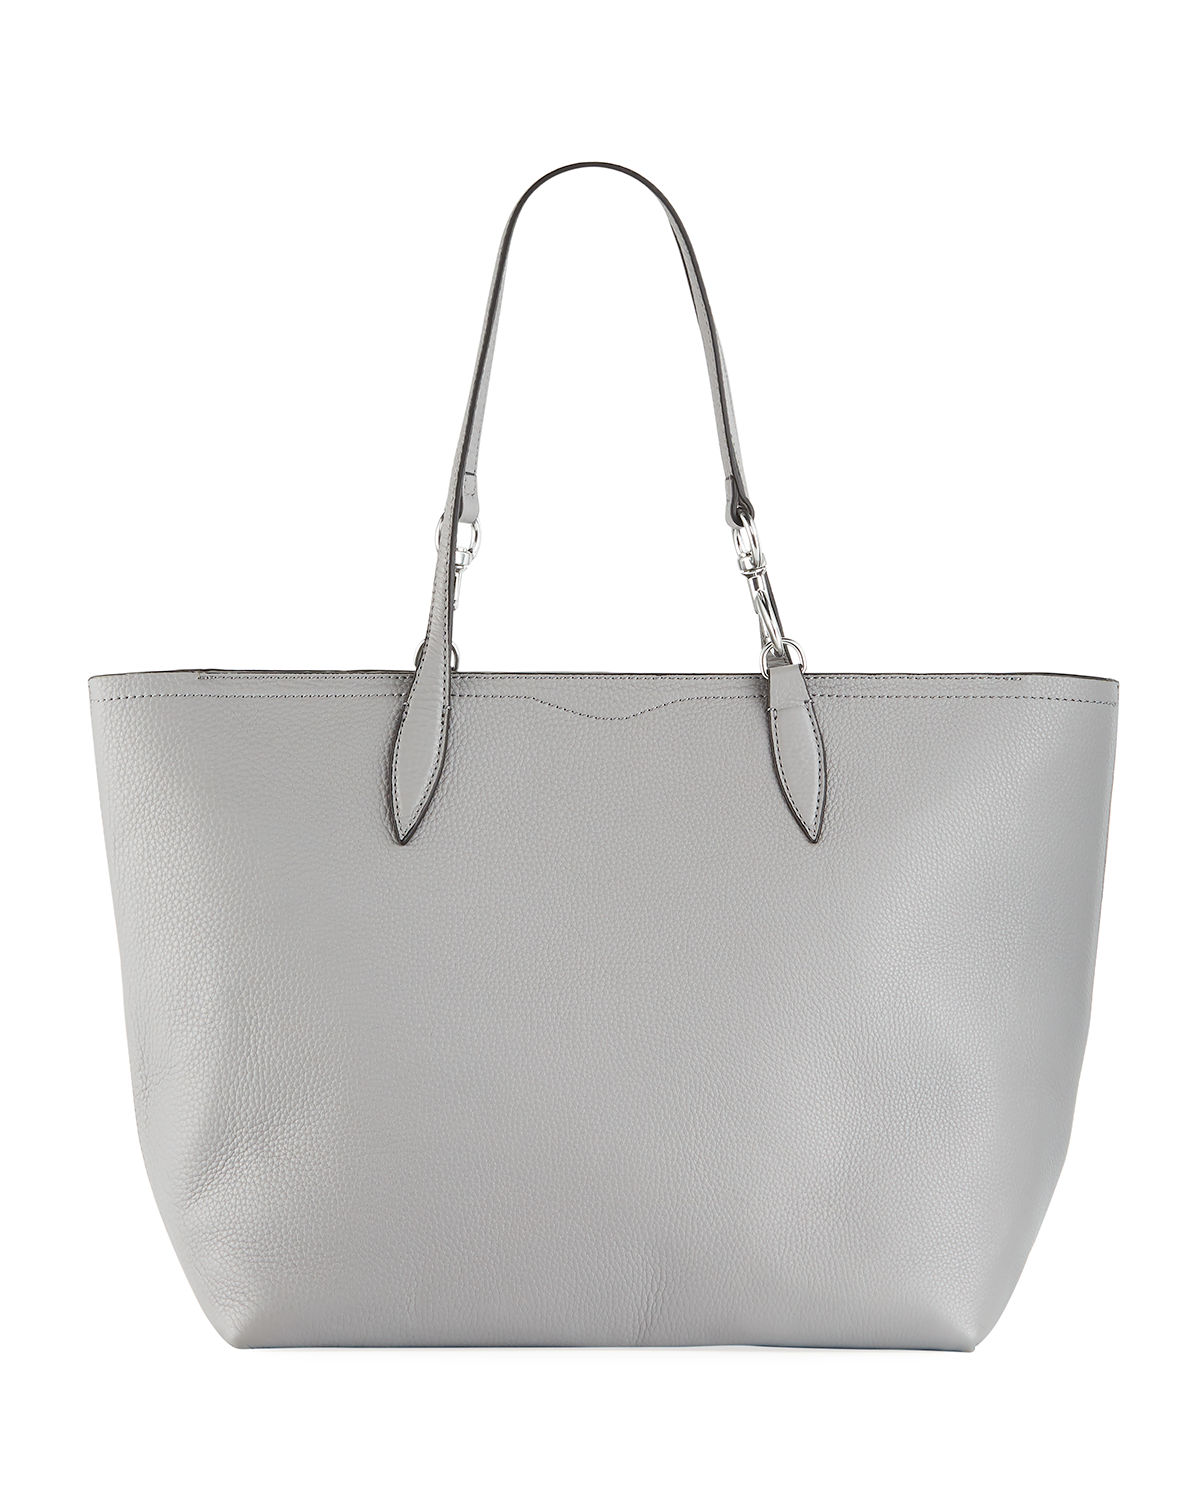 Sherry Pebbled Leather Tote Bag